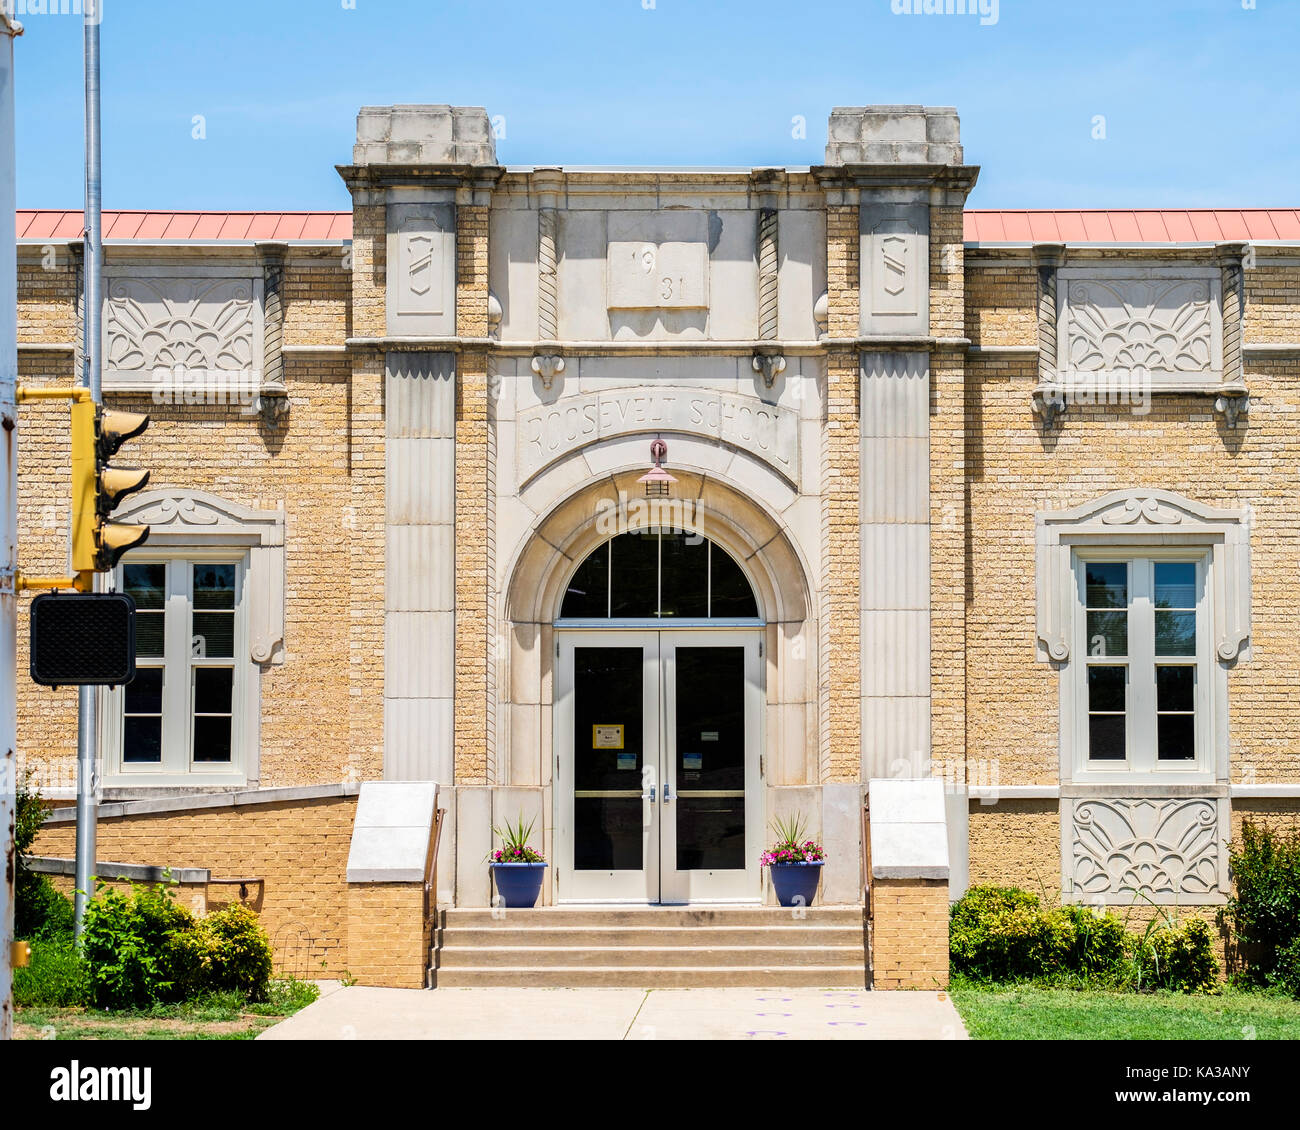 Riverside elementary school, built in the Collegiate Gothic style in 1931. 815 E. Highland Avenue, Ponca City, Oklahoma, Stock Photo